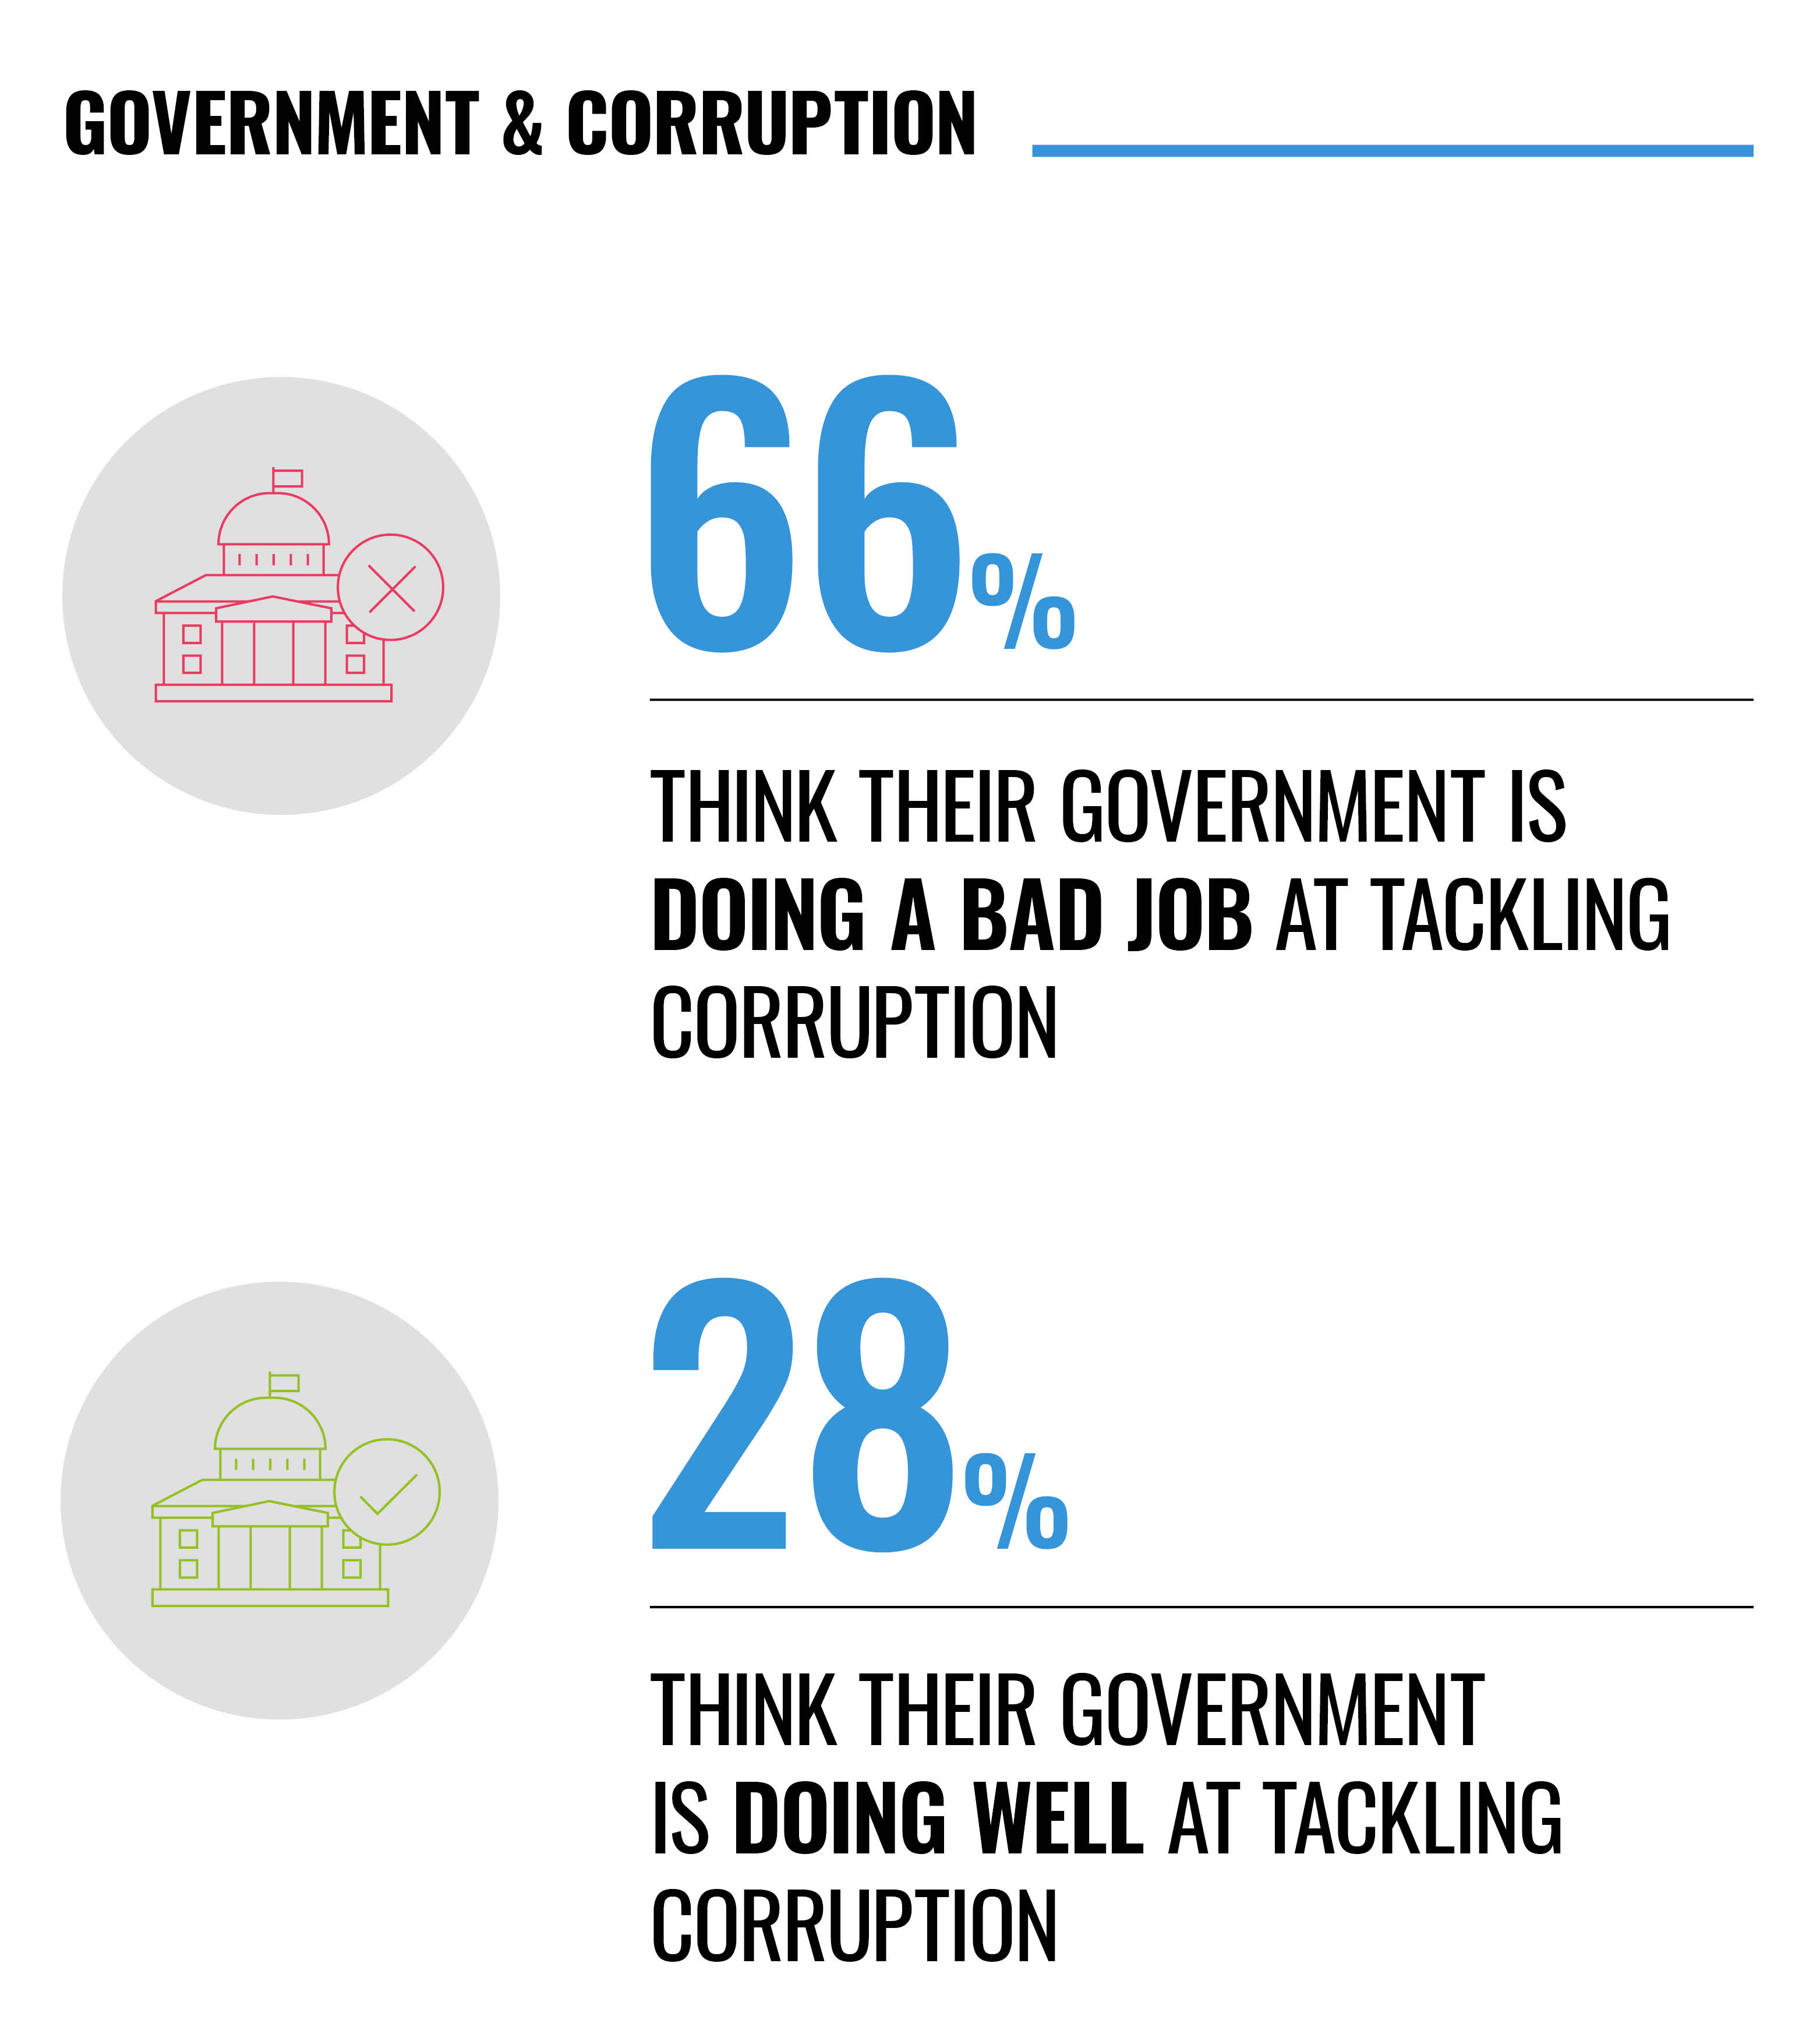 Government & corruption infographic